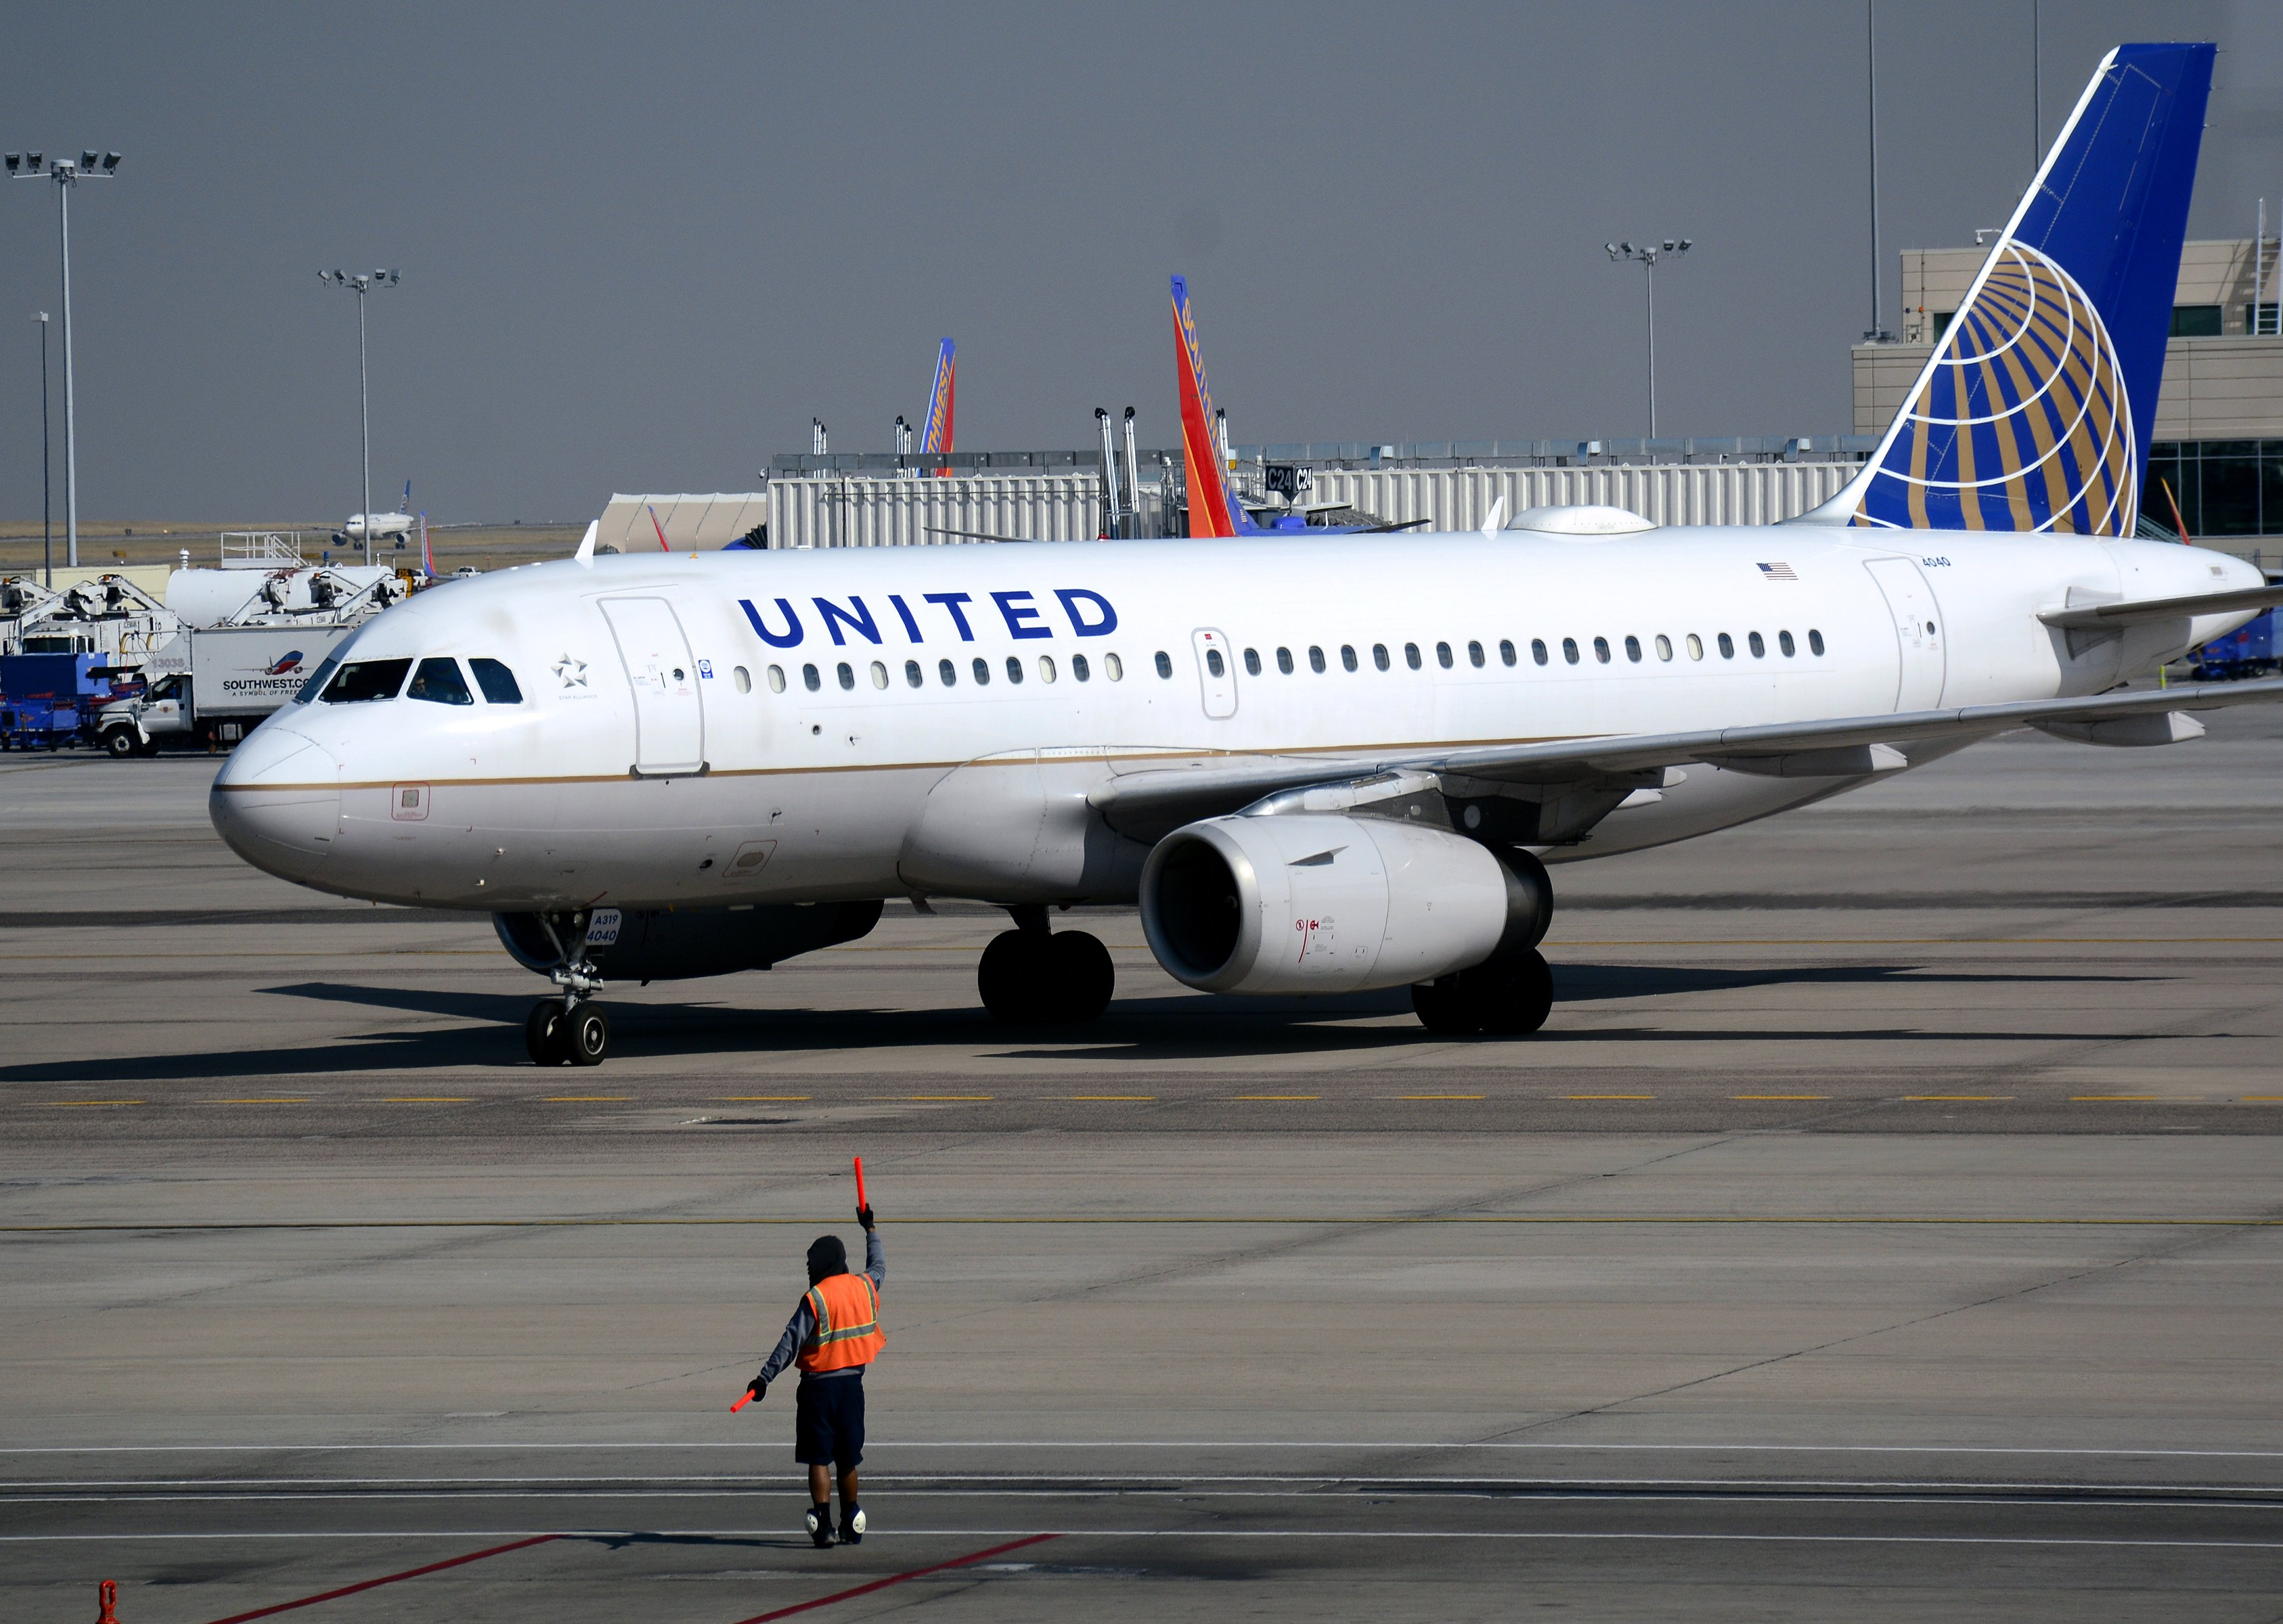 A United Airlines Airbus A319 passenger plane taxis toward a gate at Denver International Airport in Denver, Colorado.